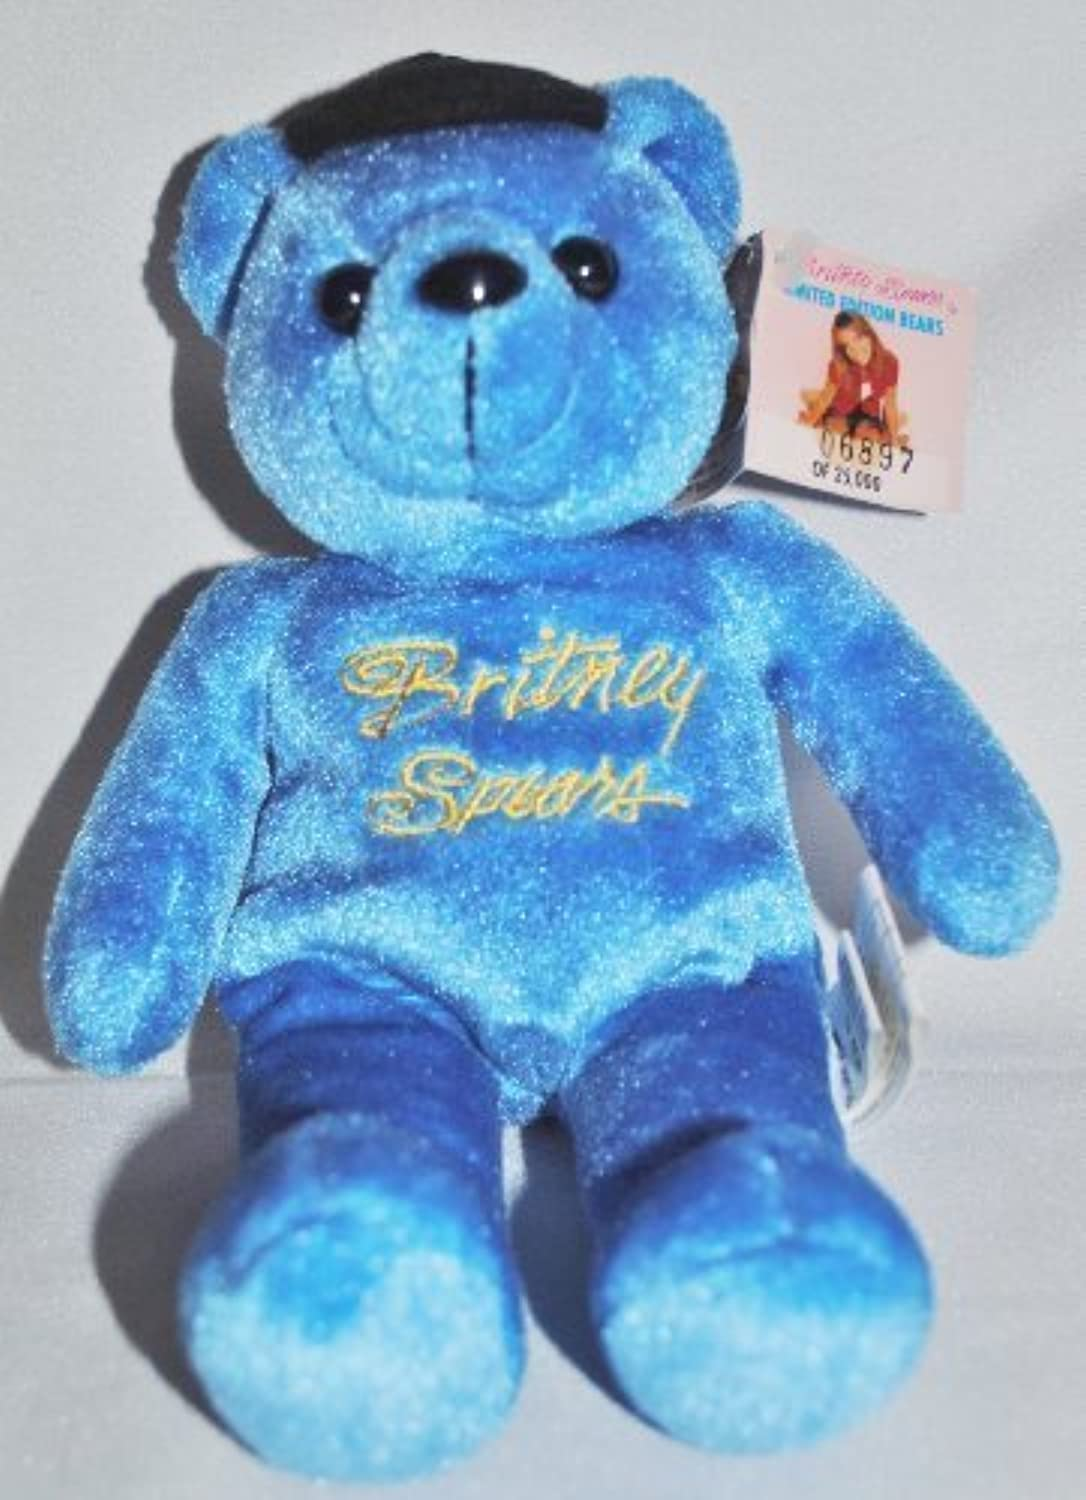 Britney Spears Limited Edition Bean Bear In Clear Plastic Keeper (2.5x2.5x7.25 inches) by Rare Bears